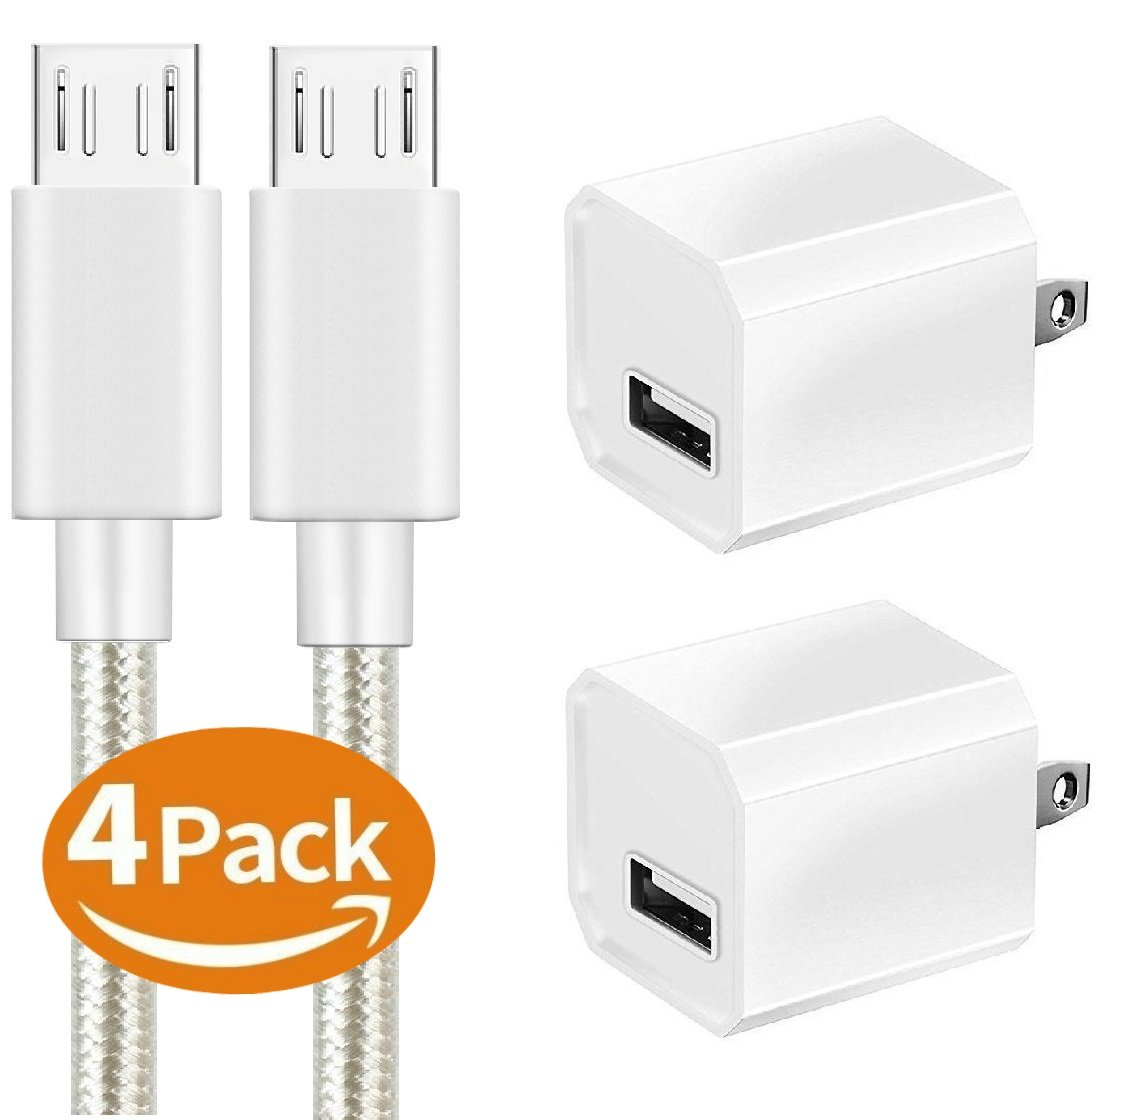 Charger, Certified 5W Universal Portable Travel USB Wall Charger Adapter w/Nylon Braided Micro 10FT USB High-Speed Cable for Samsung, LG, Motorola, Nexus, HTC, Google, Sony, Android and More (4 Pack)